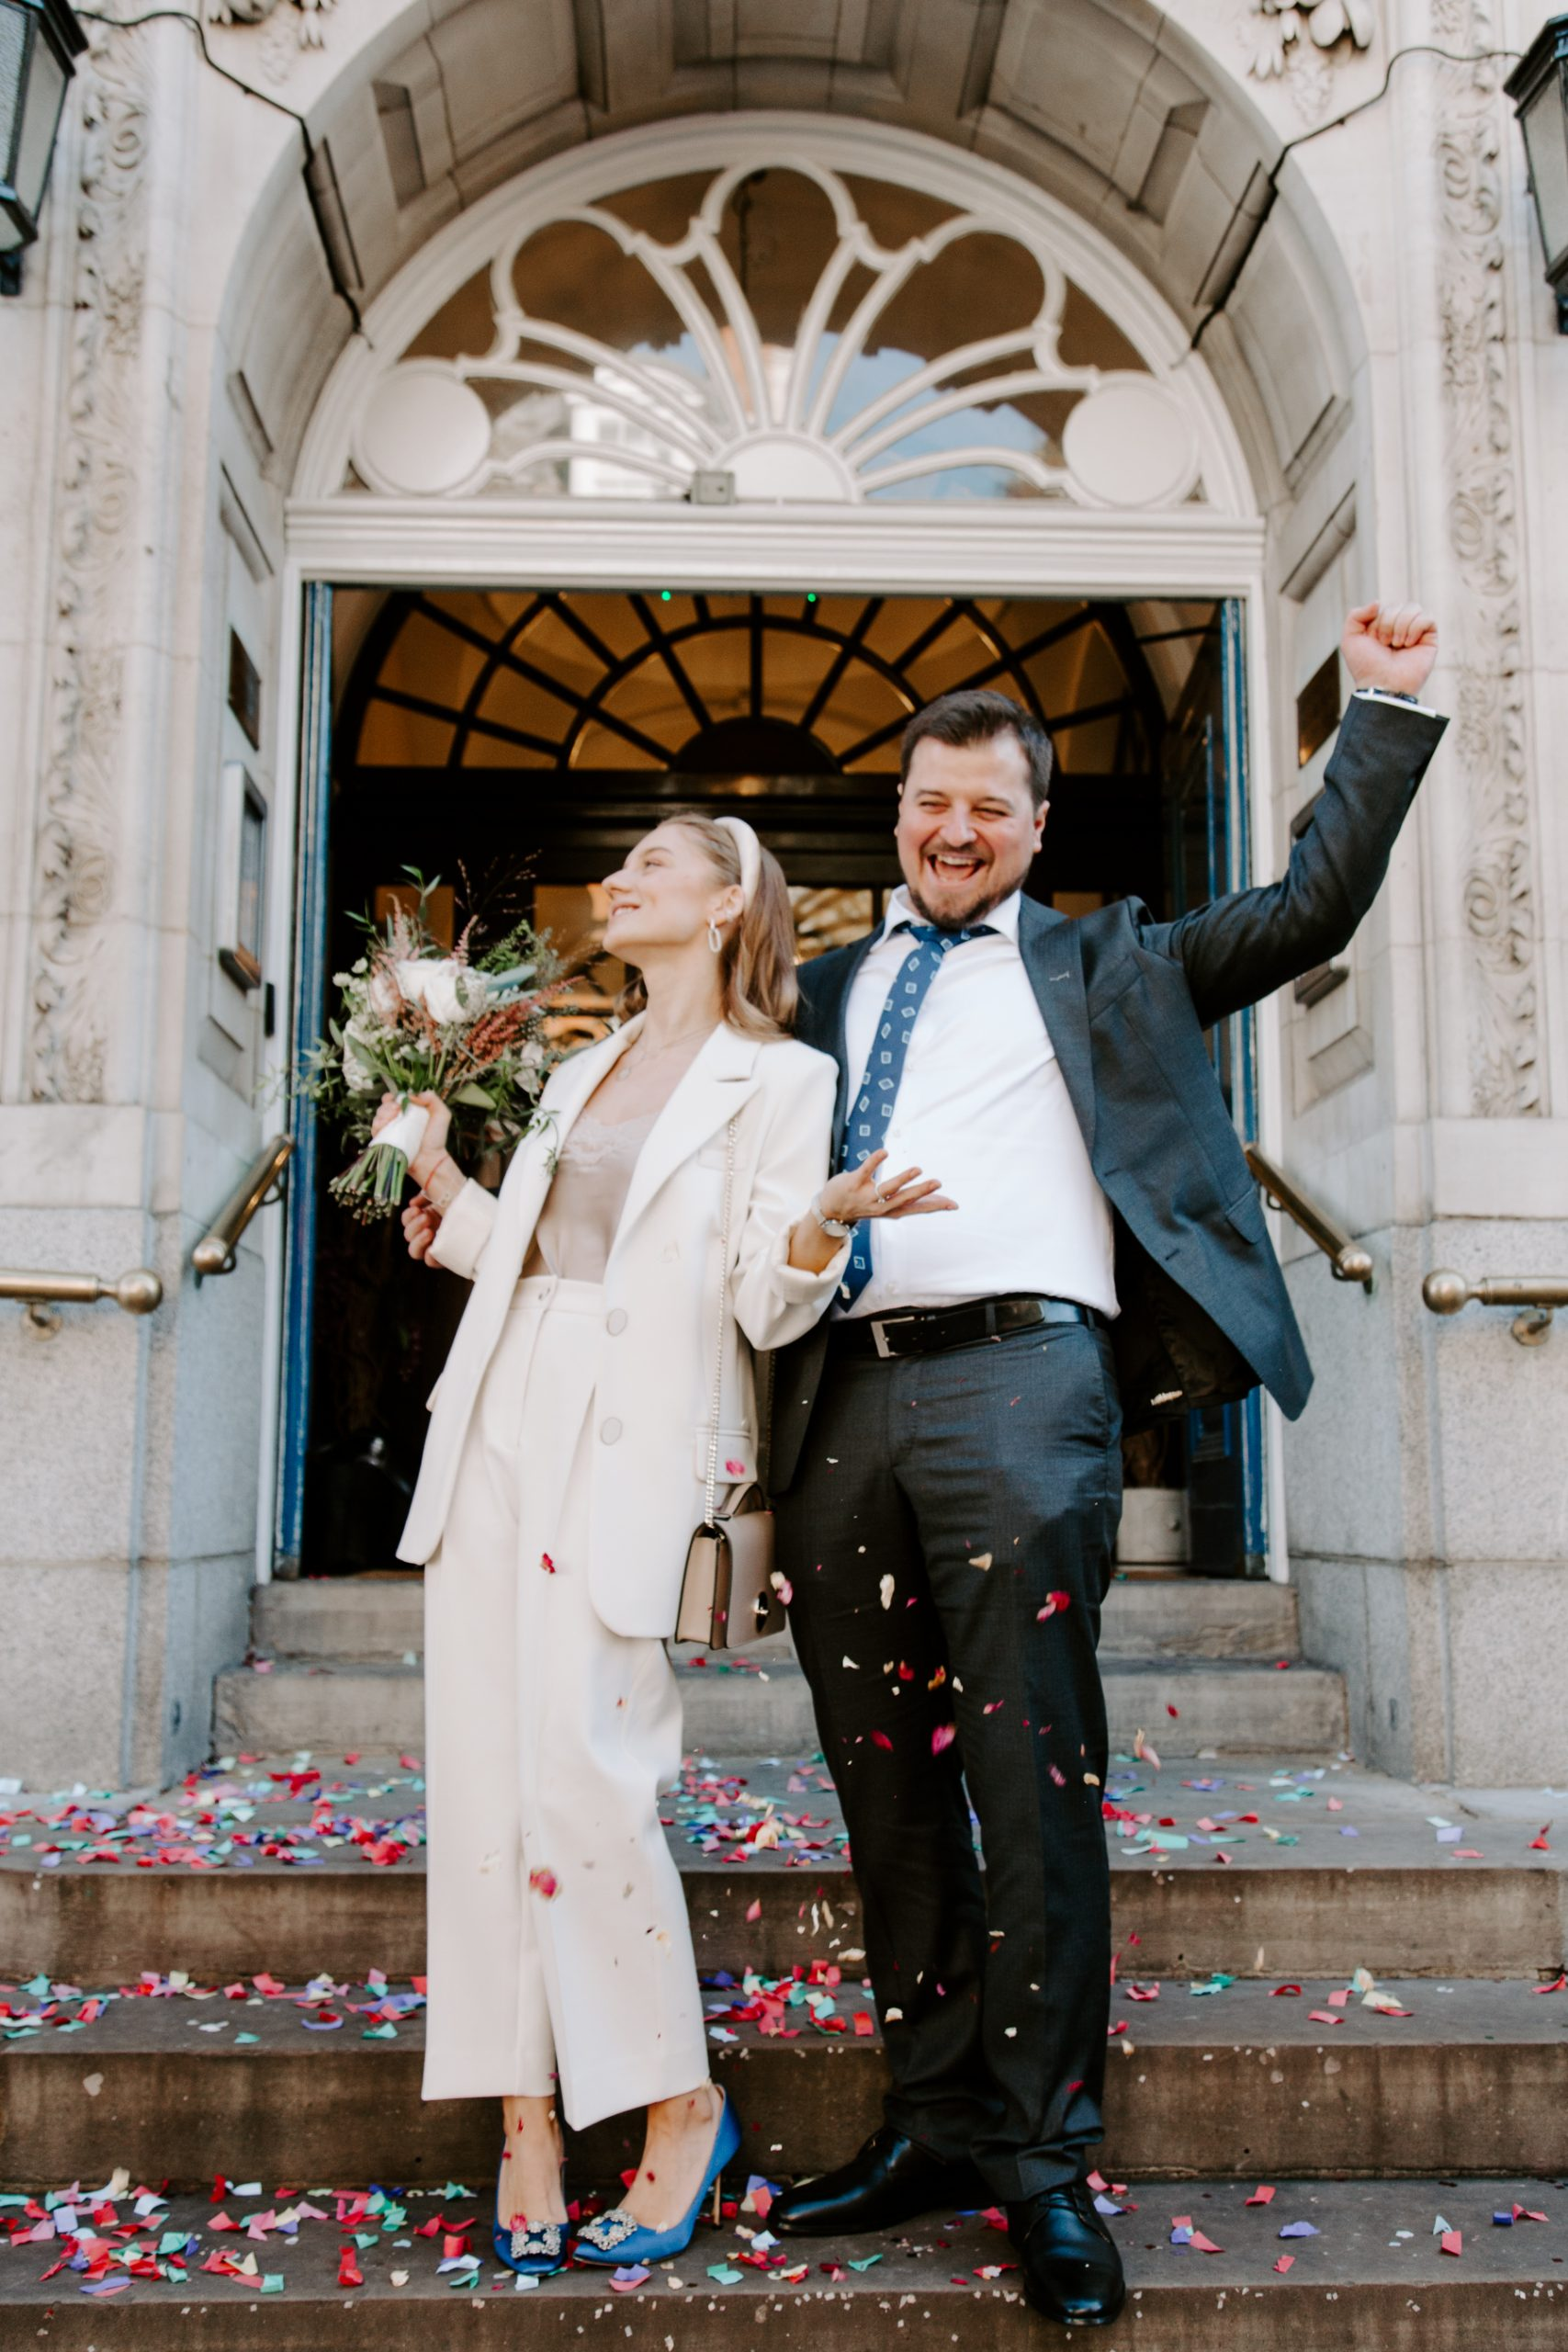 Newly married couple cheering after COVID wedding in London